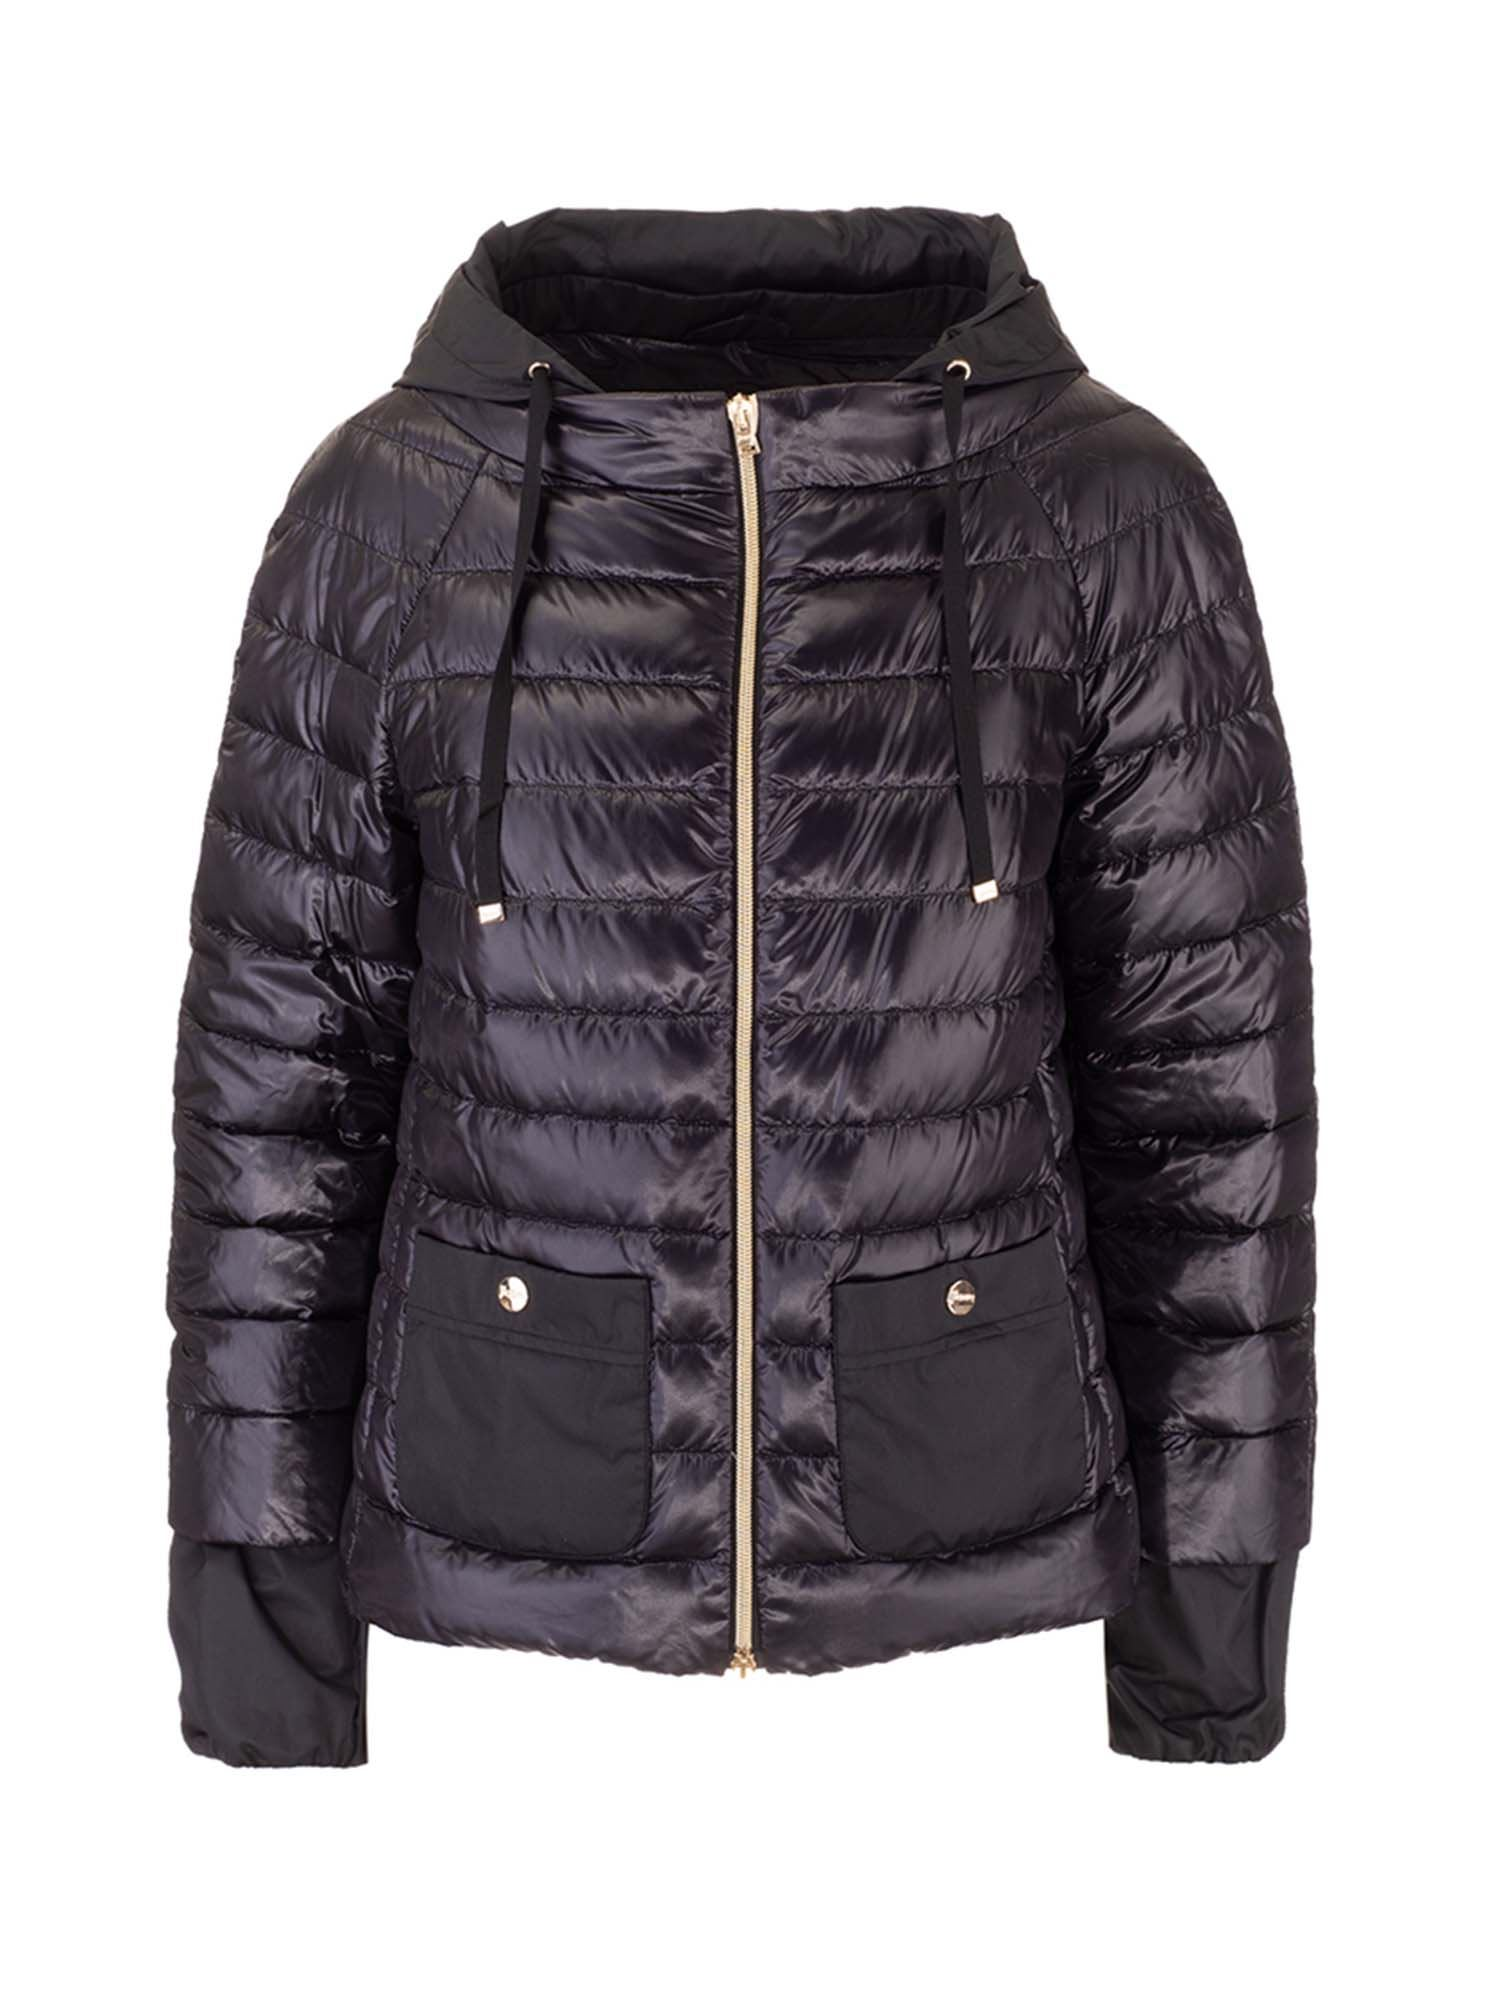 Herno LIGHTWEIGHT QUILTED DOWN JACKET IN BLACK